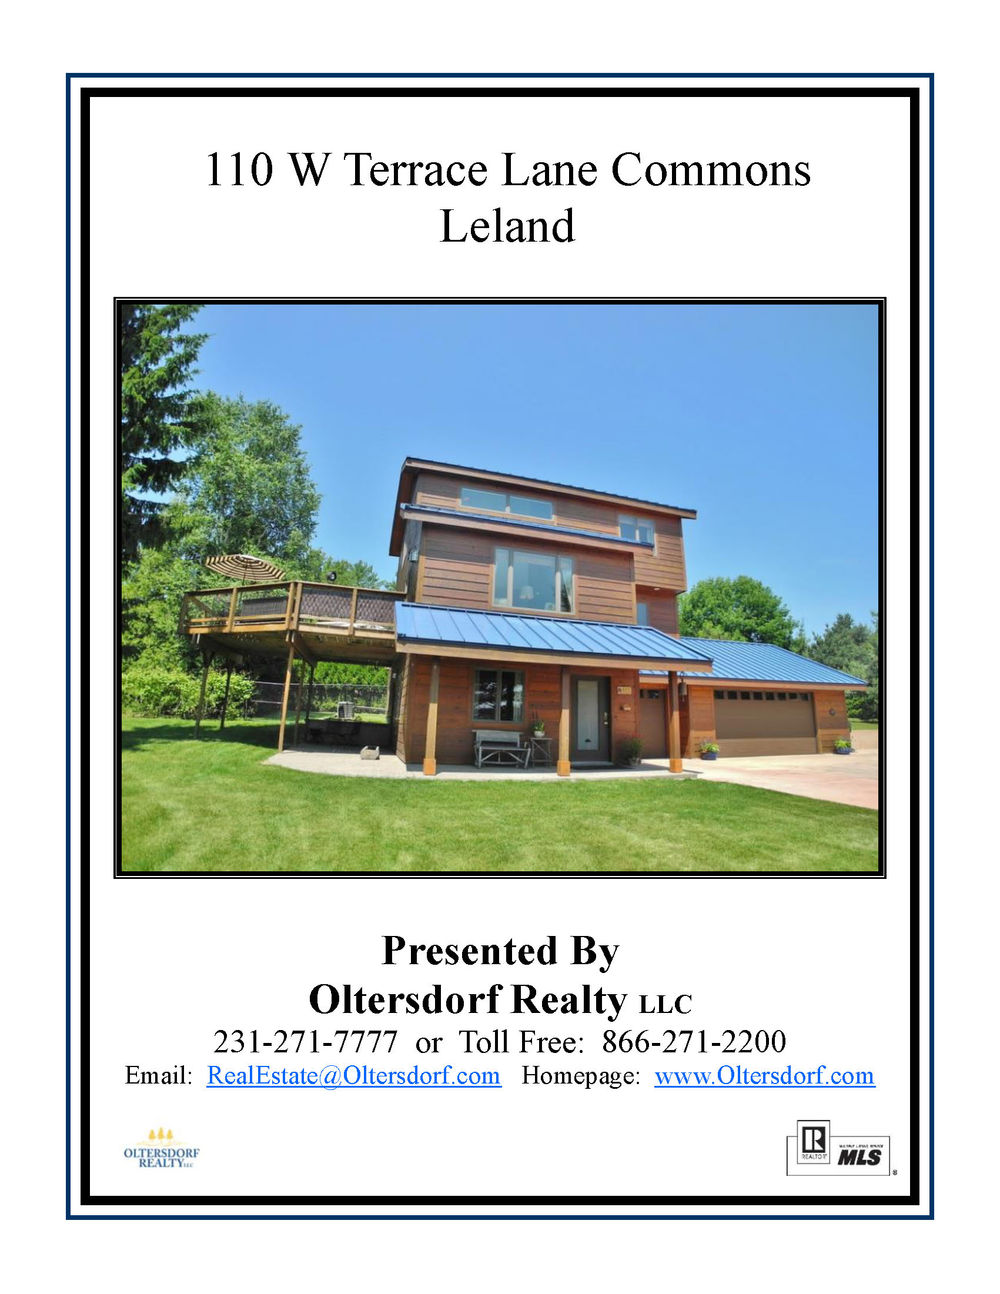 110 W Terrace Lane Commons, Leland, Leelanau County, Real Estate For Sale by Oltersdorf Realty Marketing Packet (1).jpg